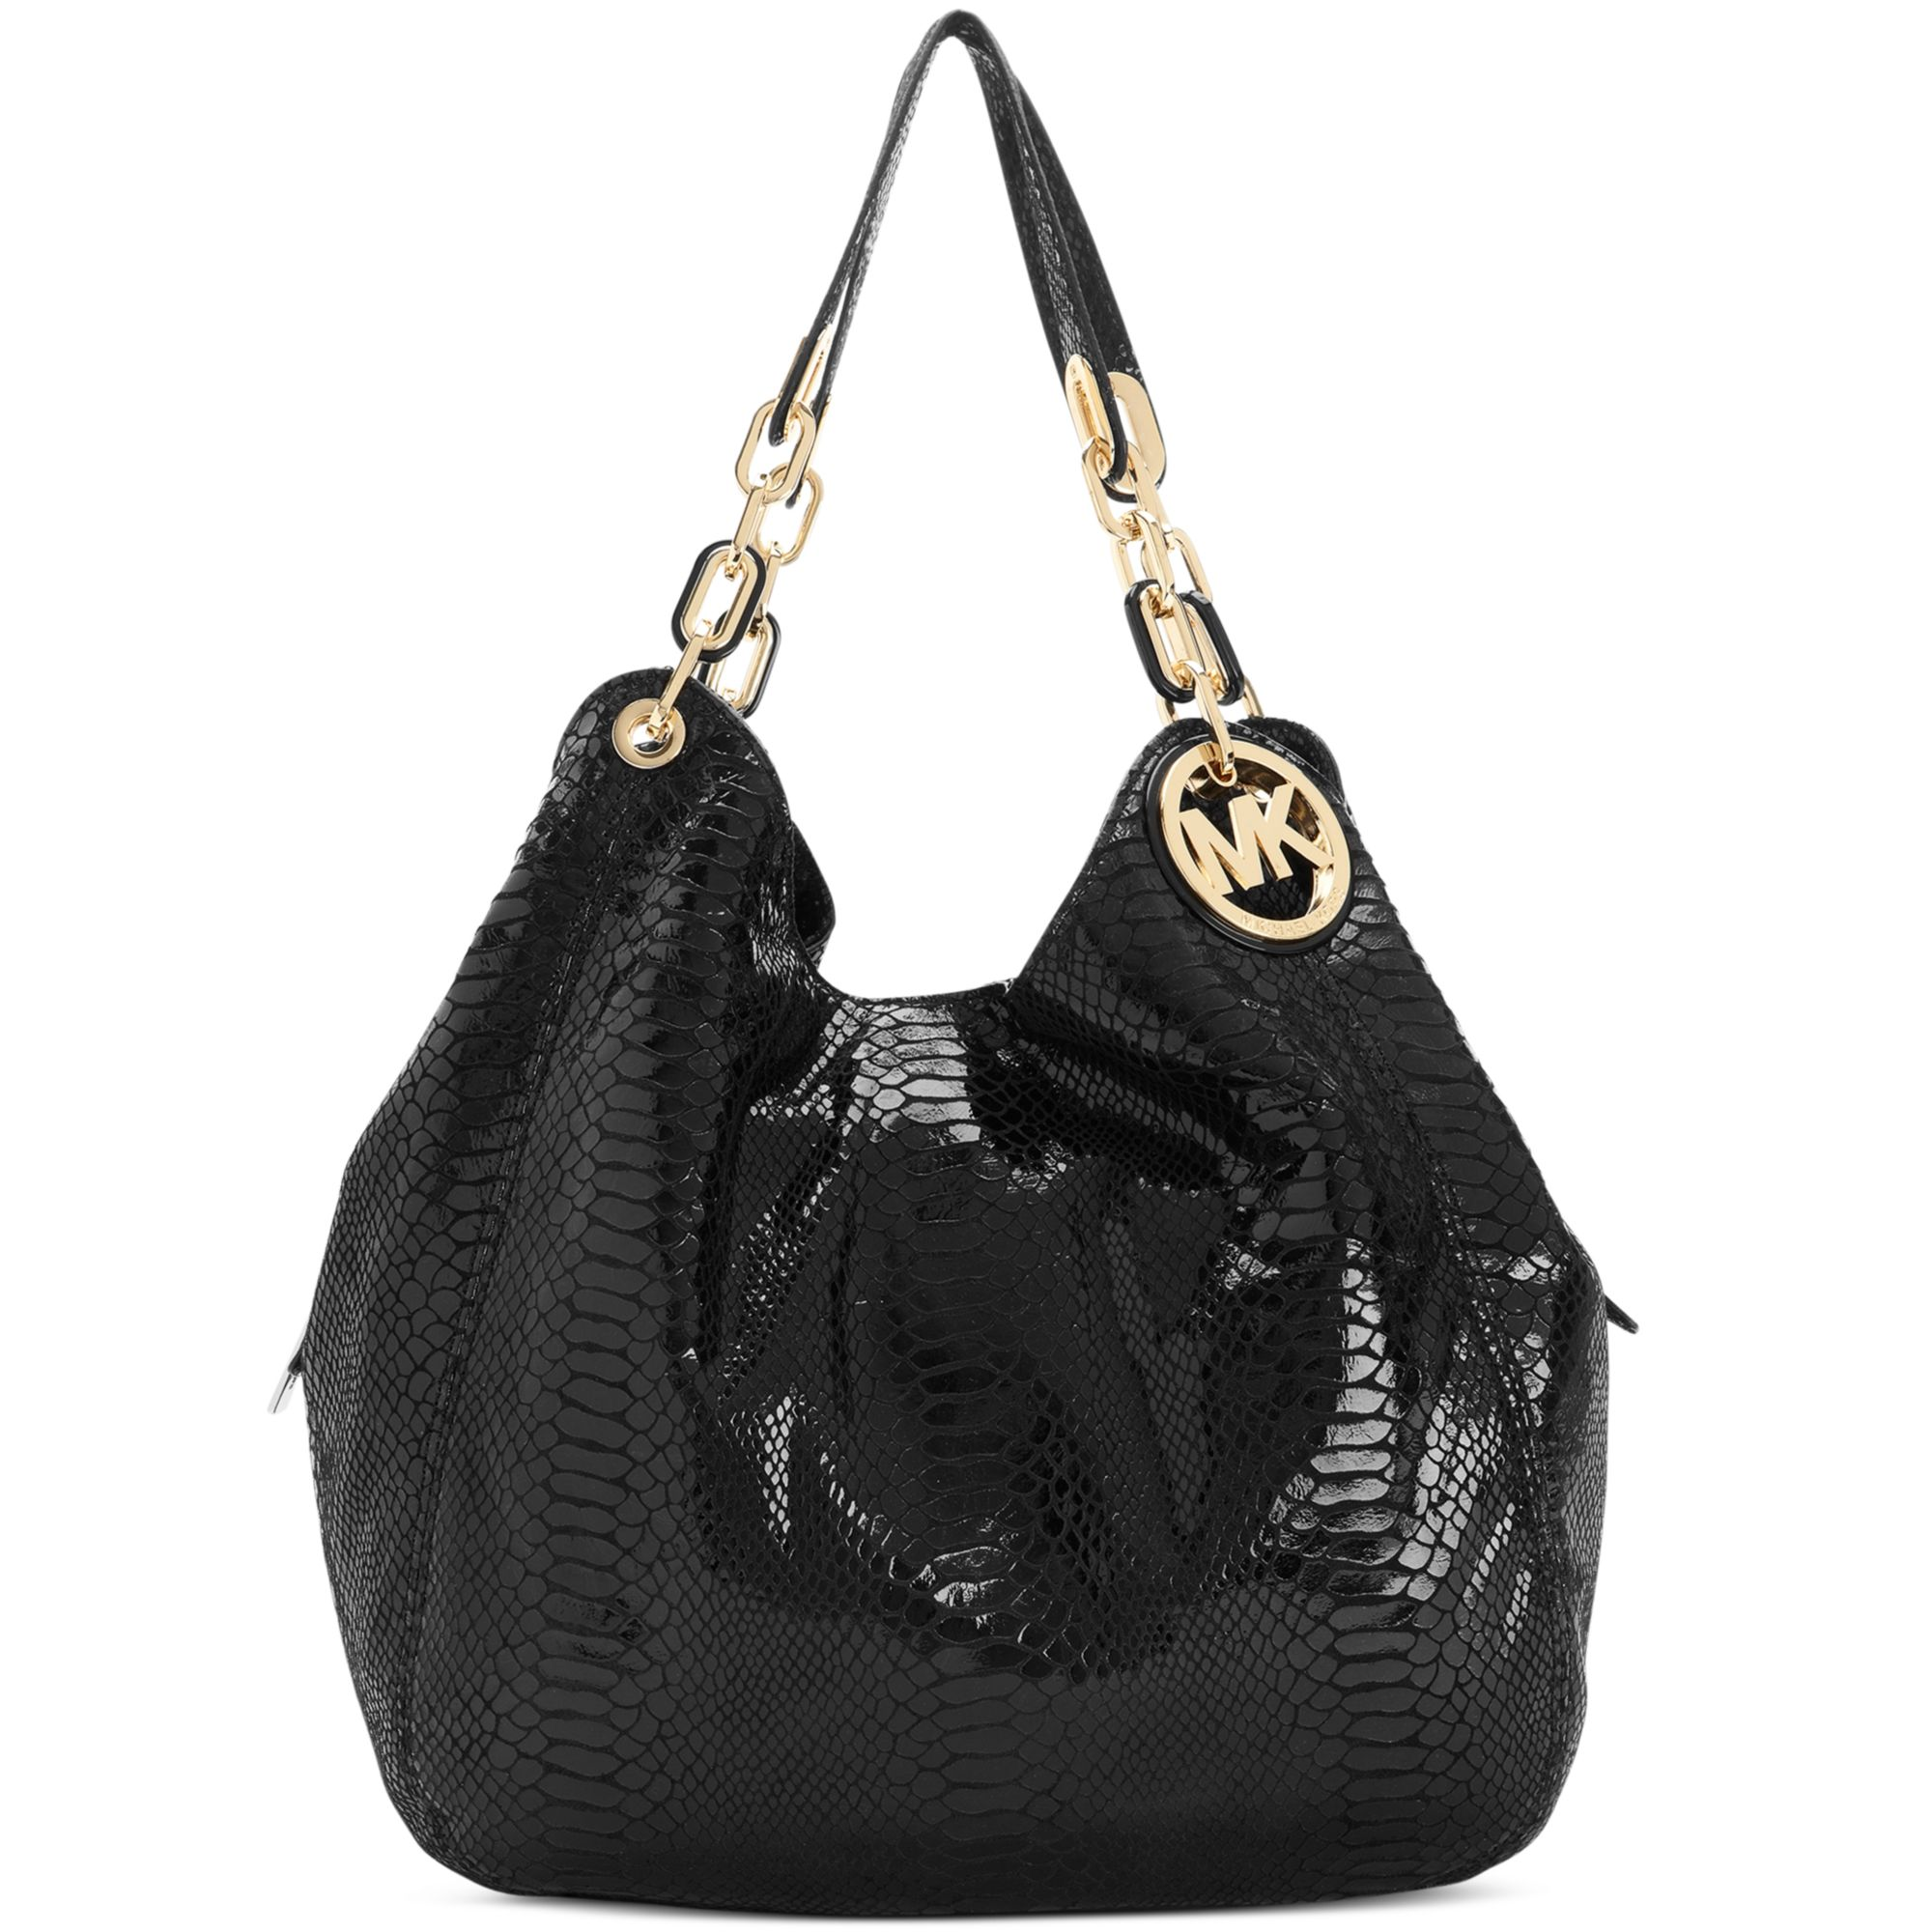 43b172e6beaf ... shopping lyst michael kors fulton large shoulder tote in black 6252e  91748